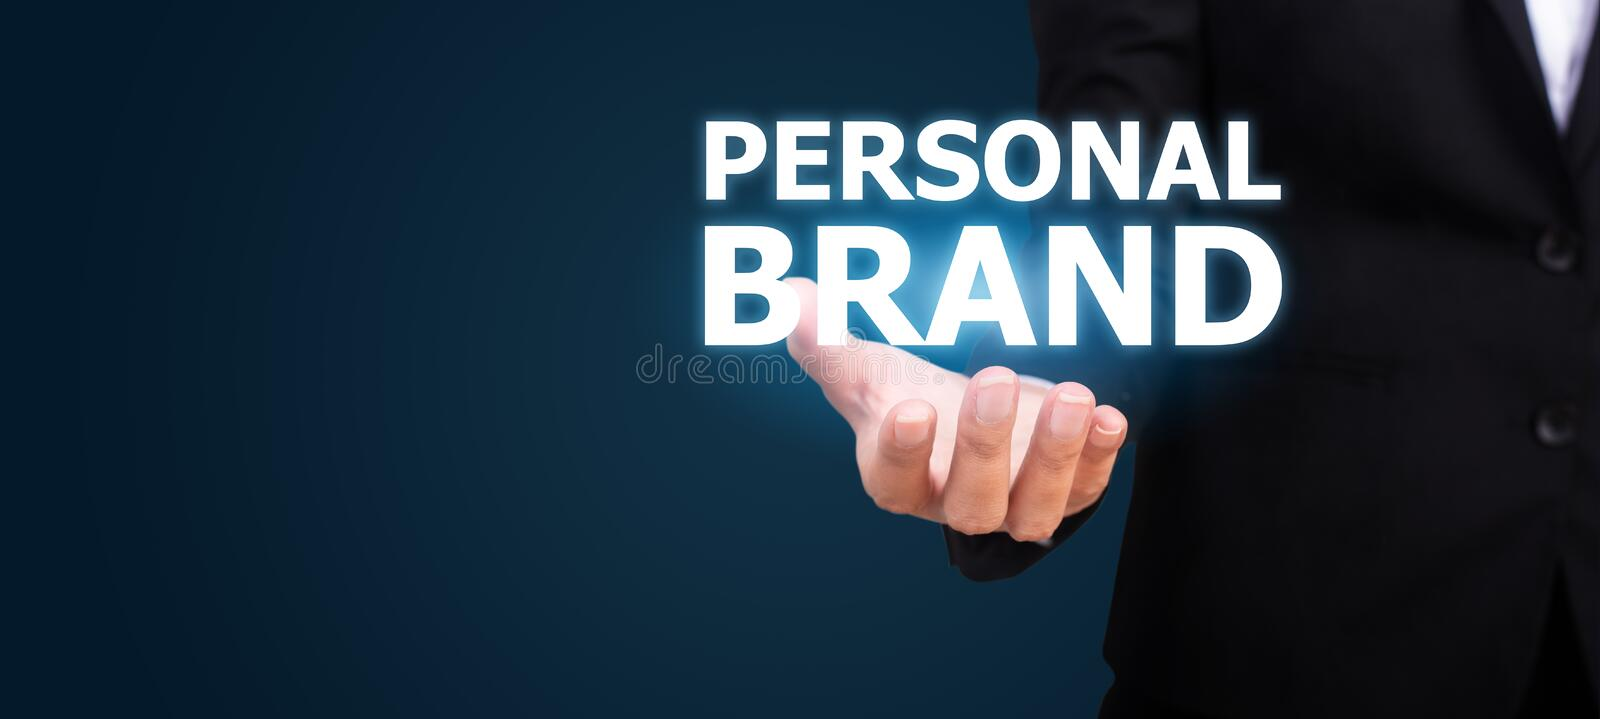 Personal brand concept. Personal brand in the hand of business.  royalty free stock photo